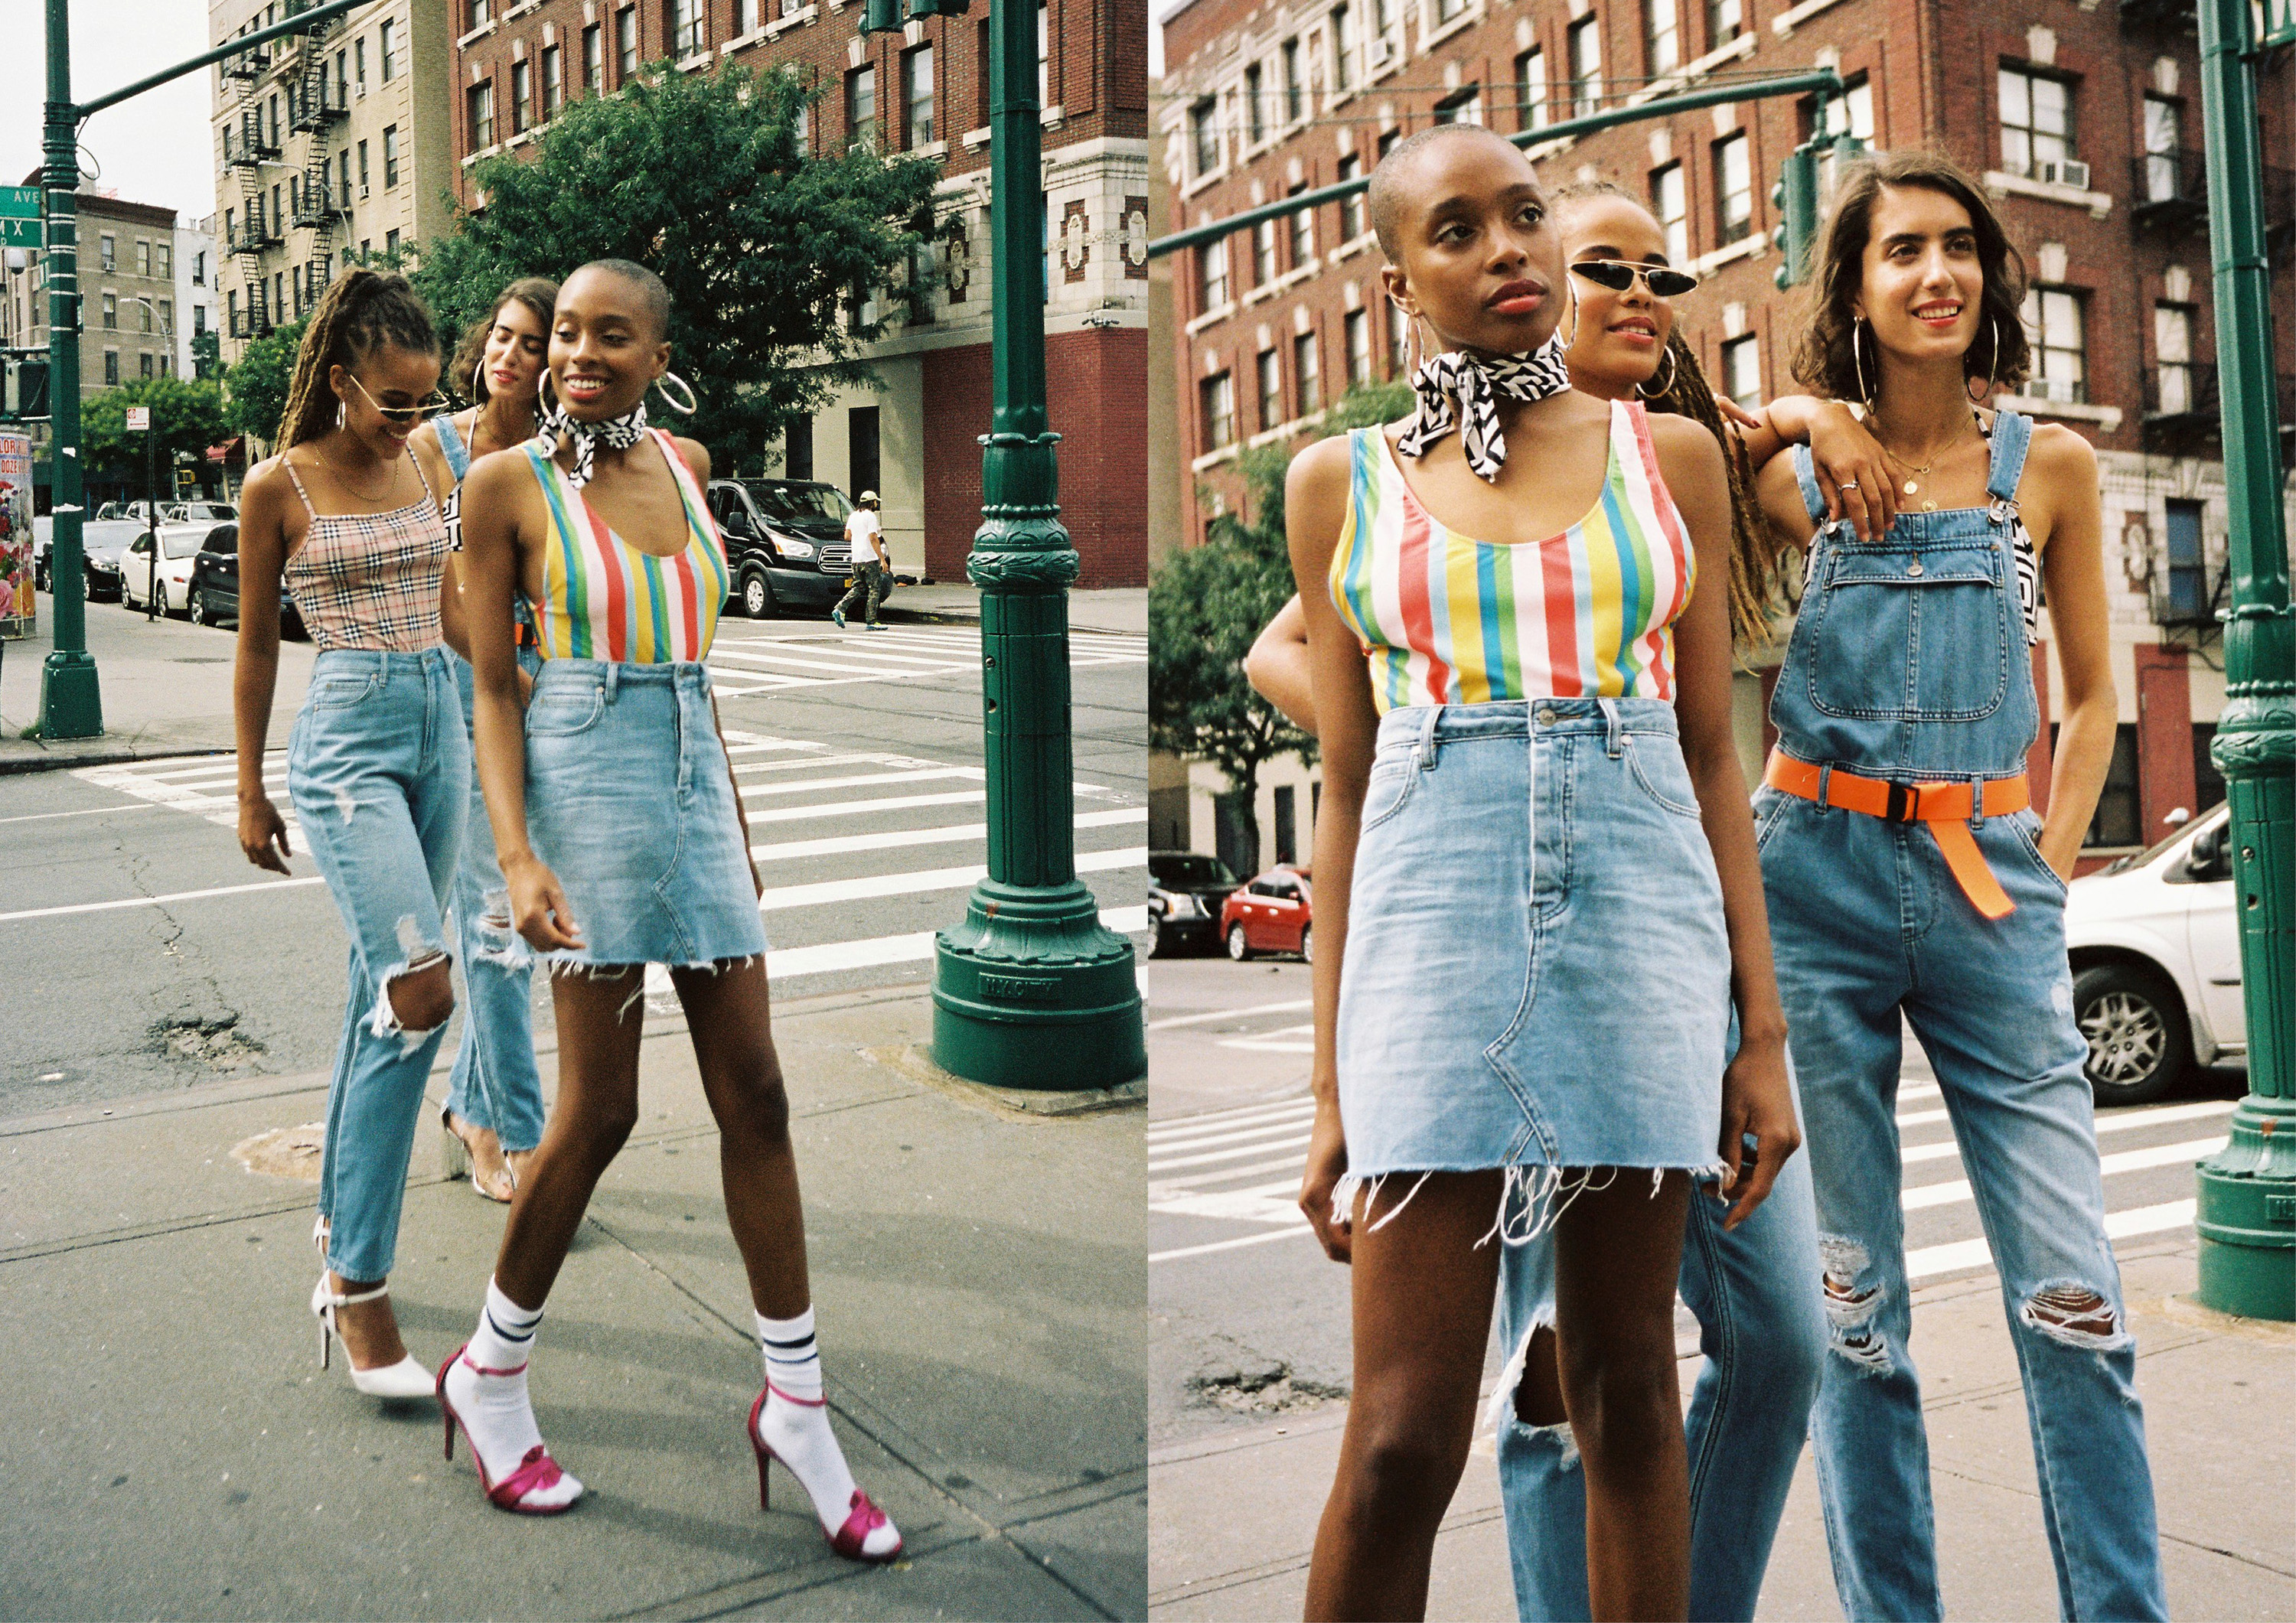 Lee Jeans Australia models in NYC wearing the new Harlem collection of denim jeans, shorts and overalls